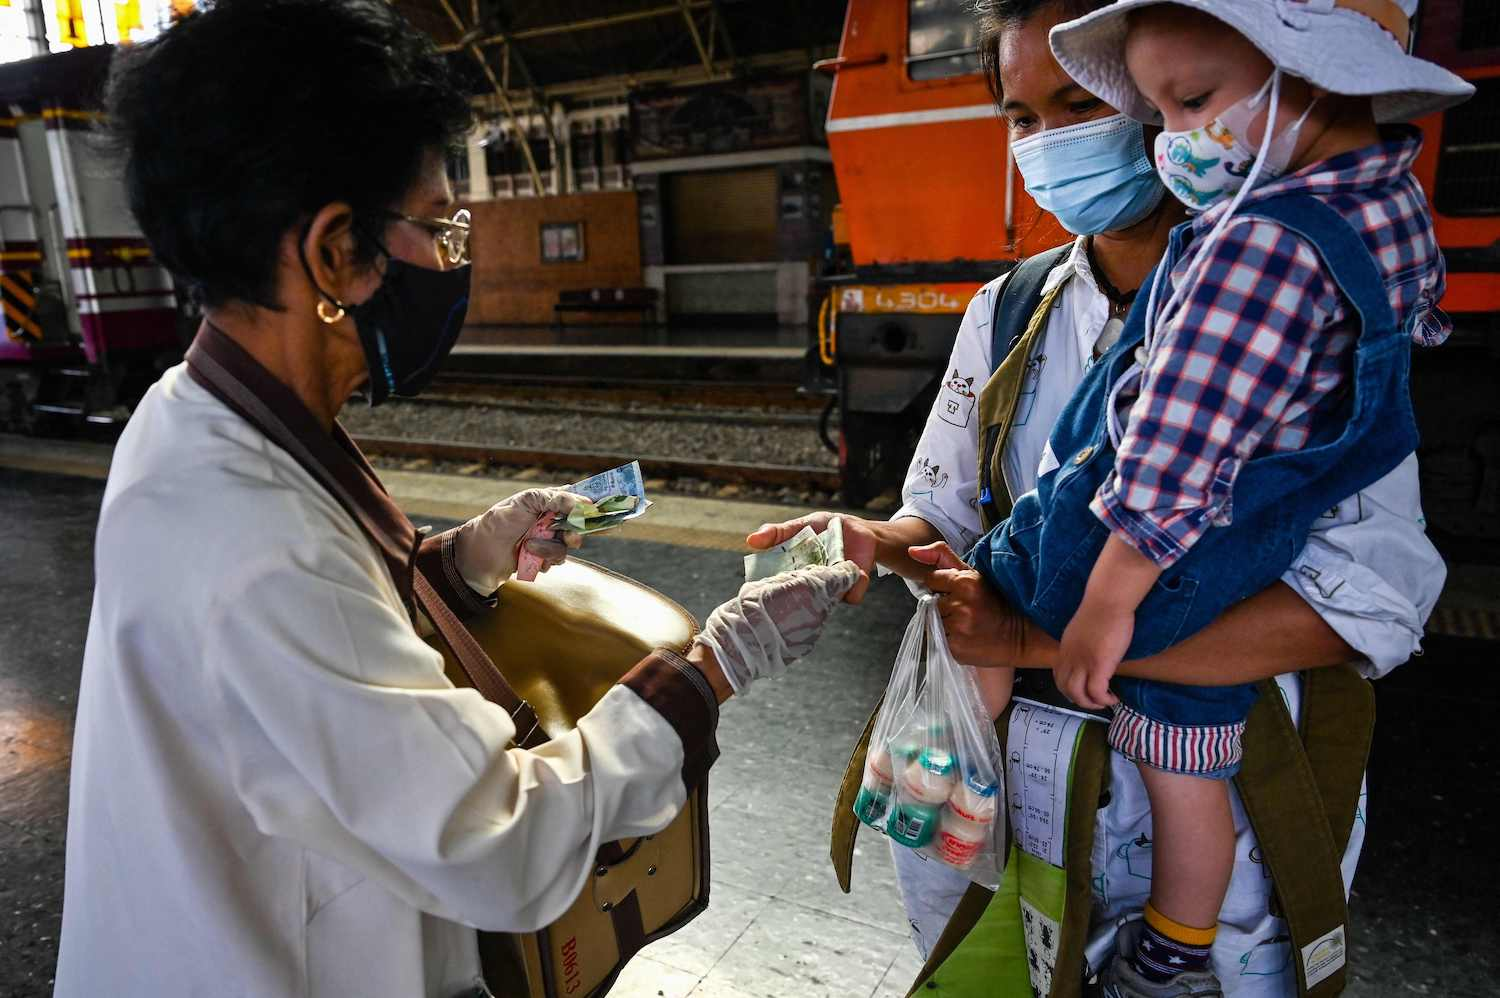 A woman buys drinking yoghurt from a vendor at Hua Lamphong station. (AFP Photo)